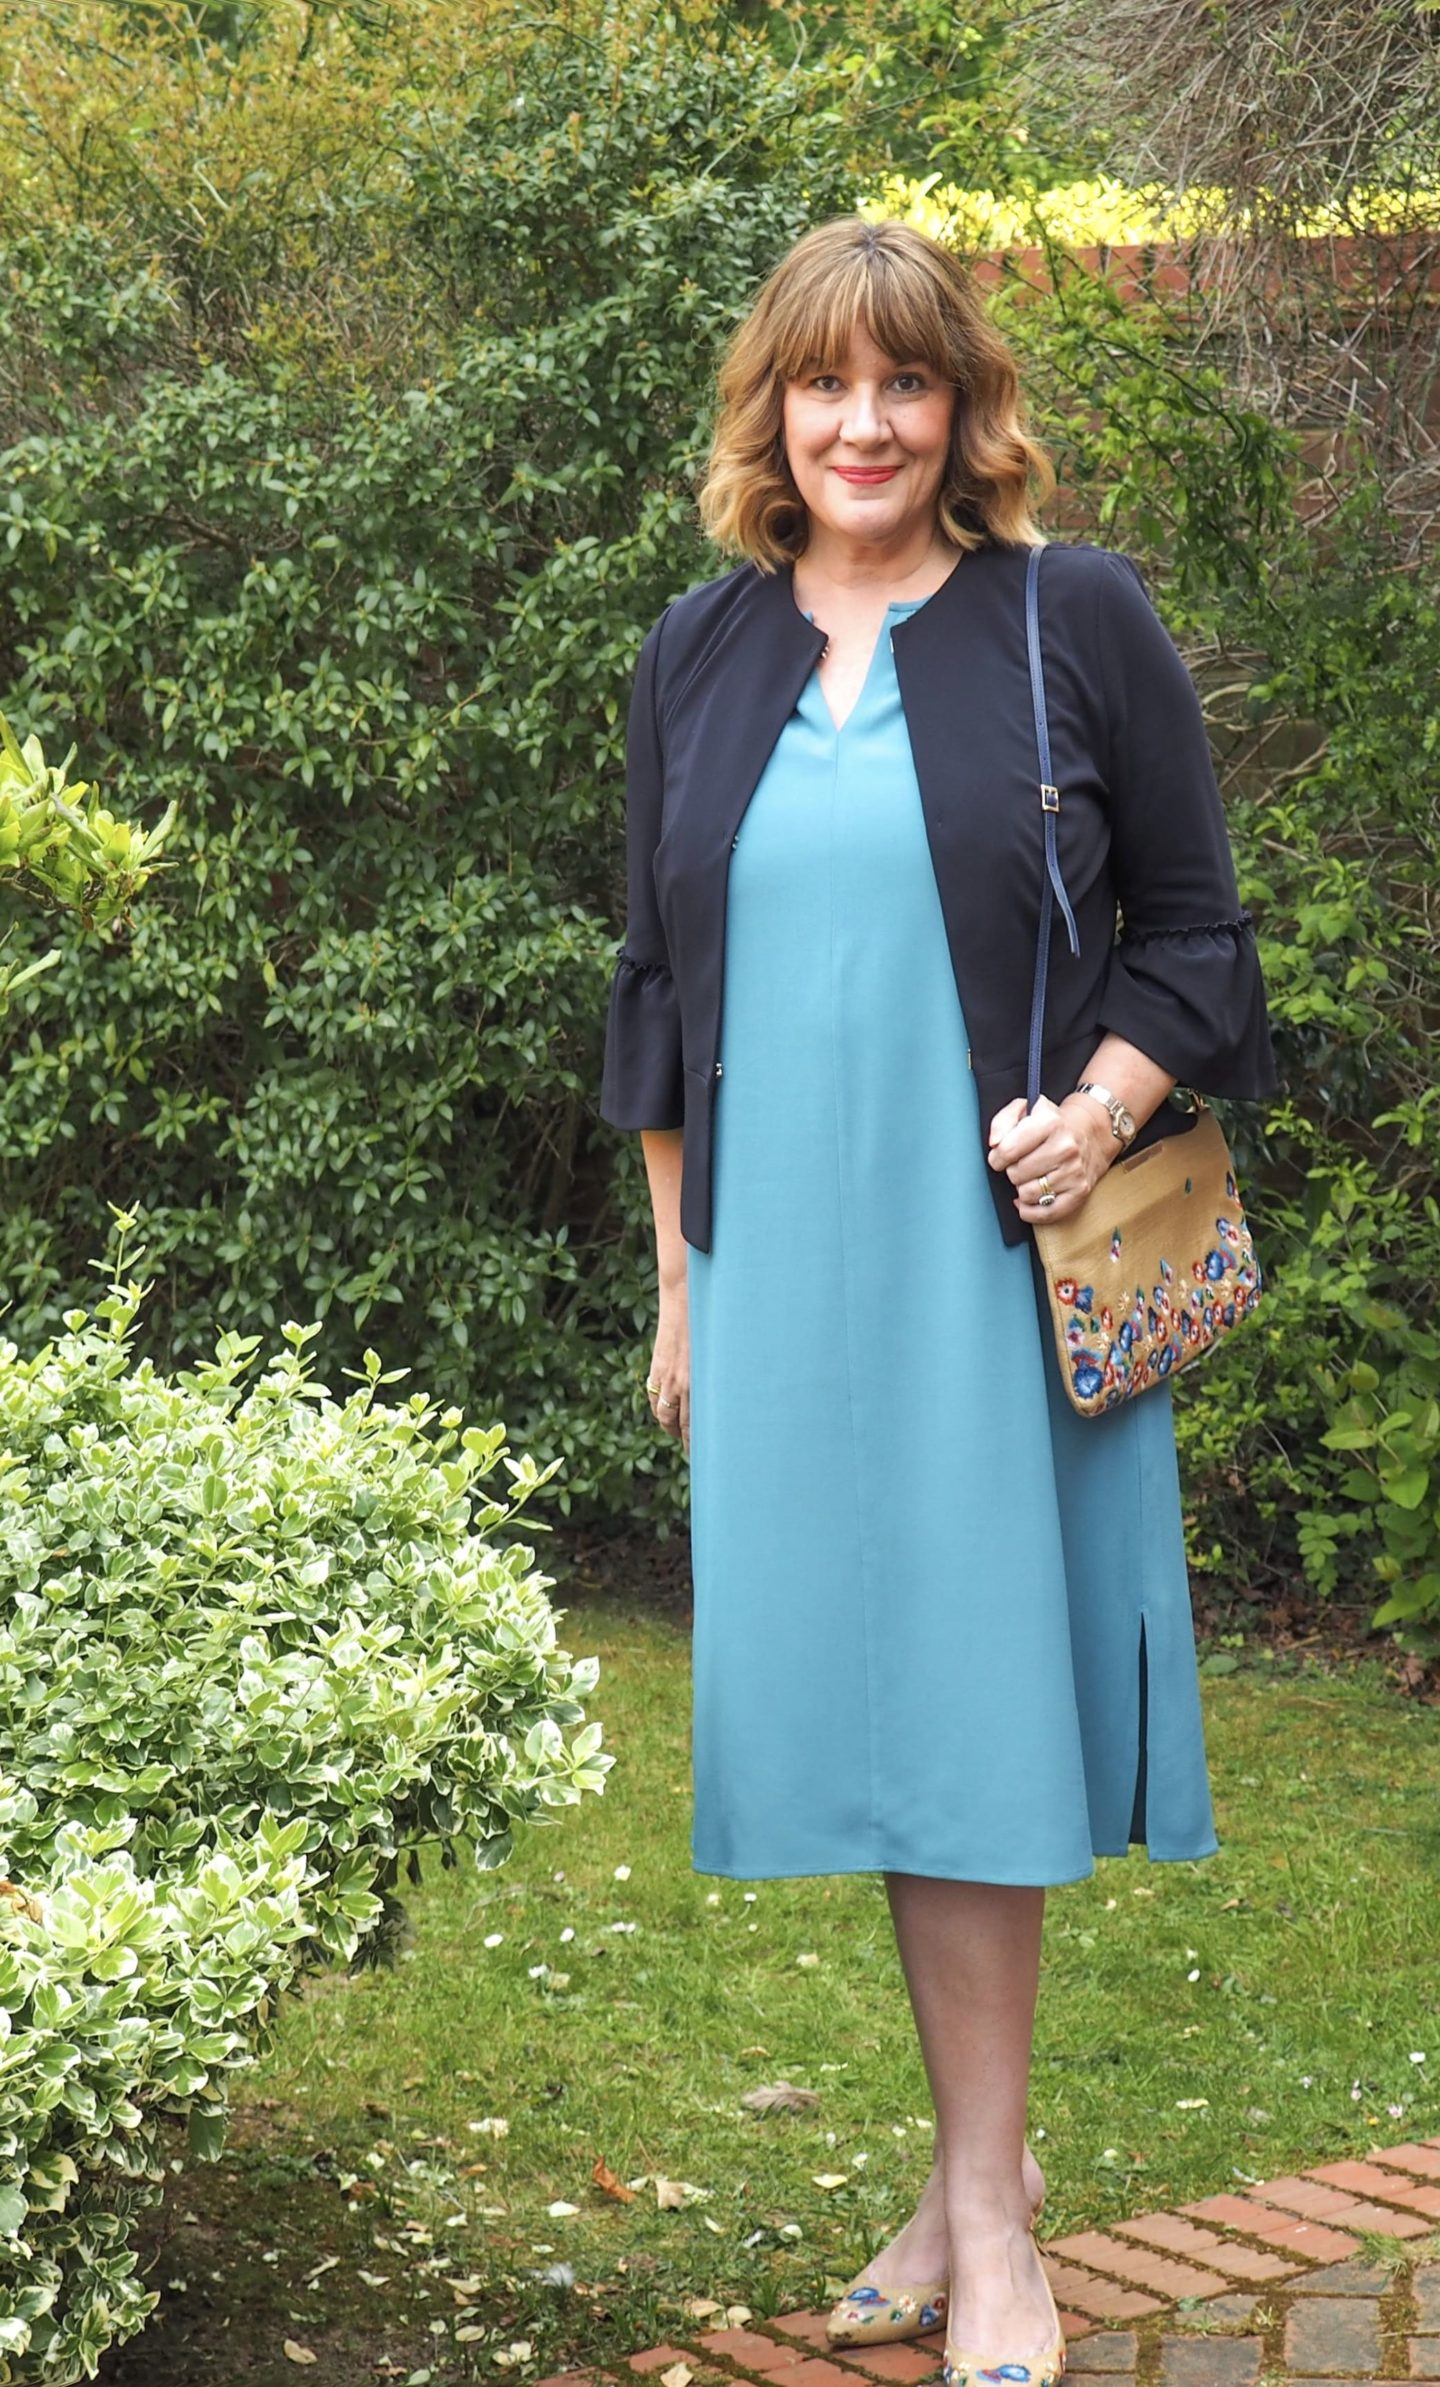 What To Wear With A Teal Dress